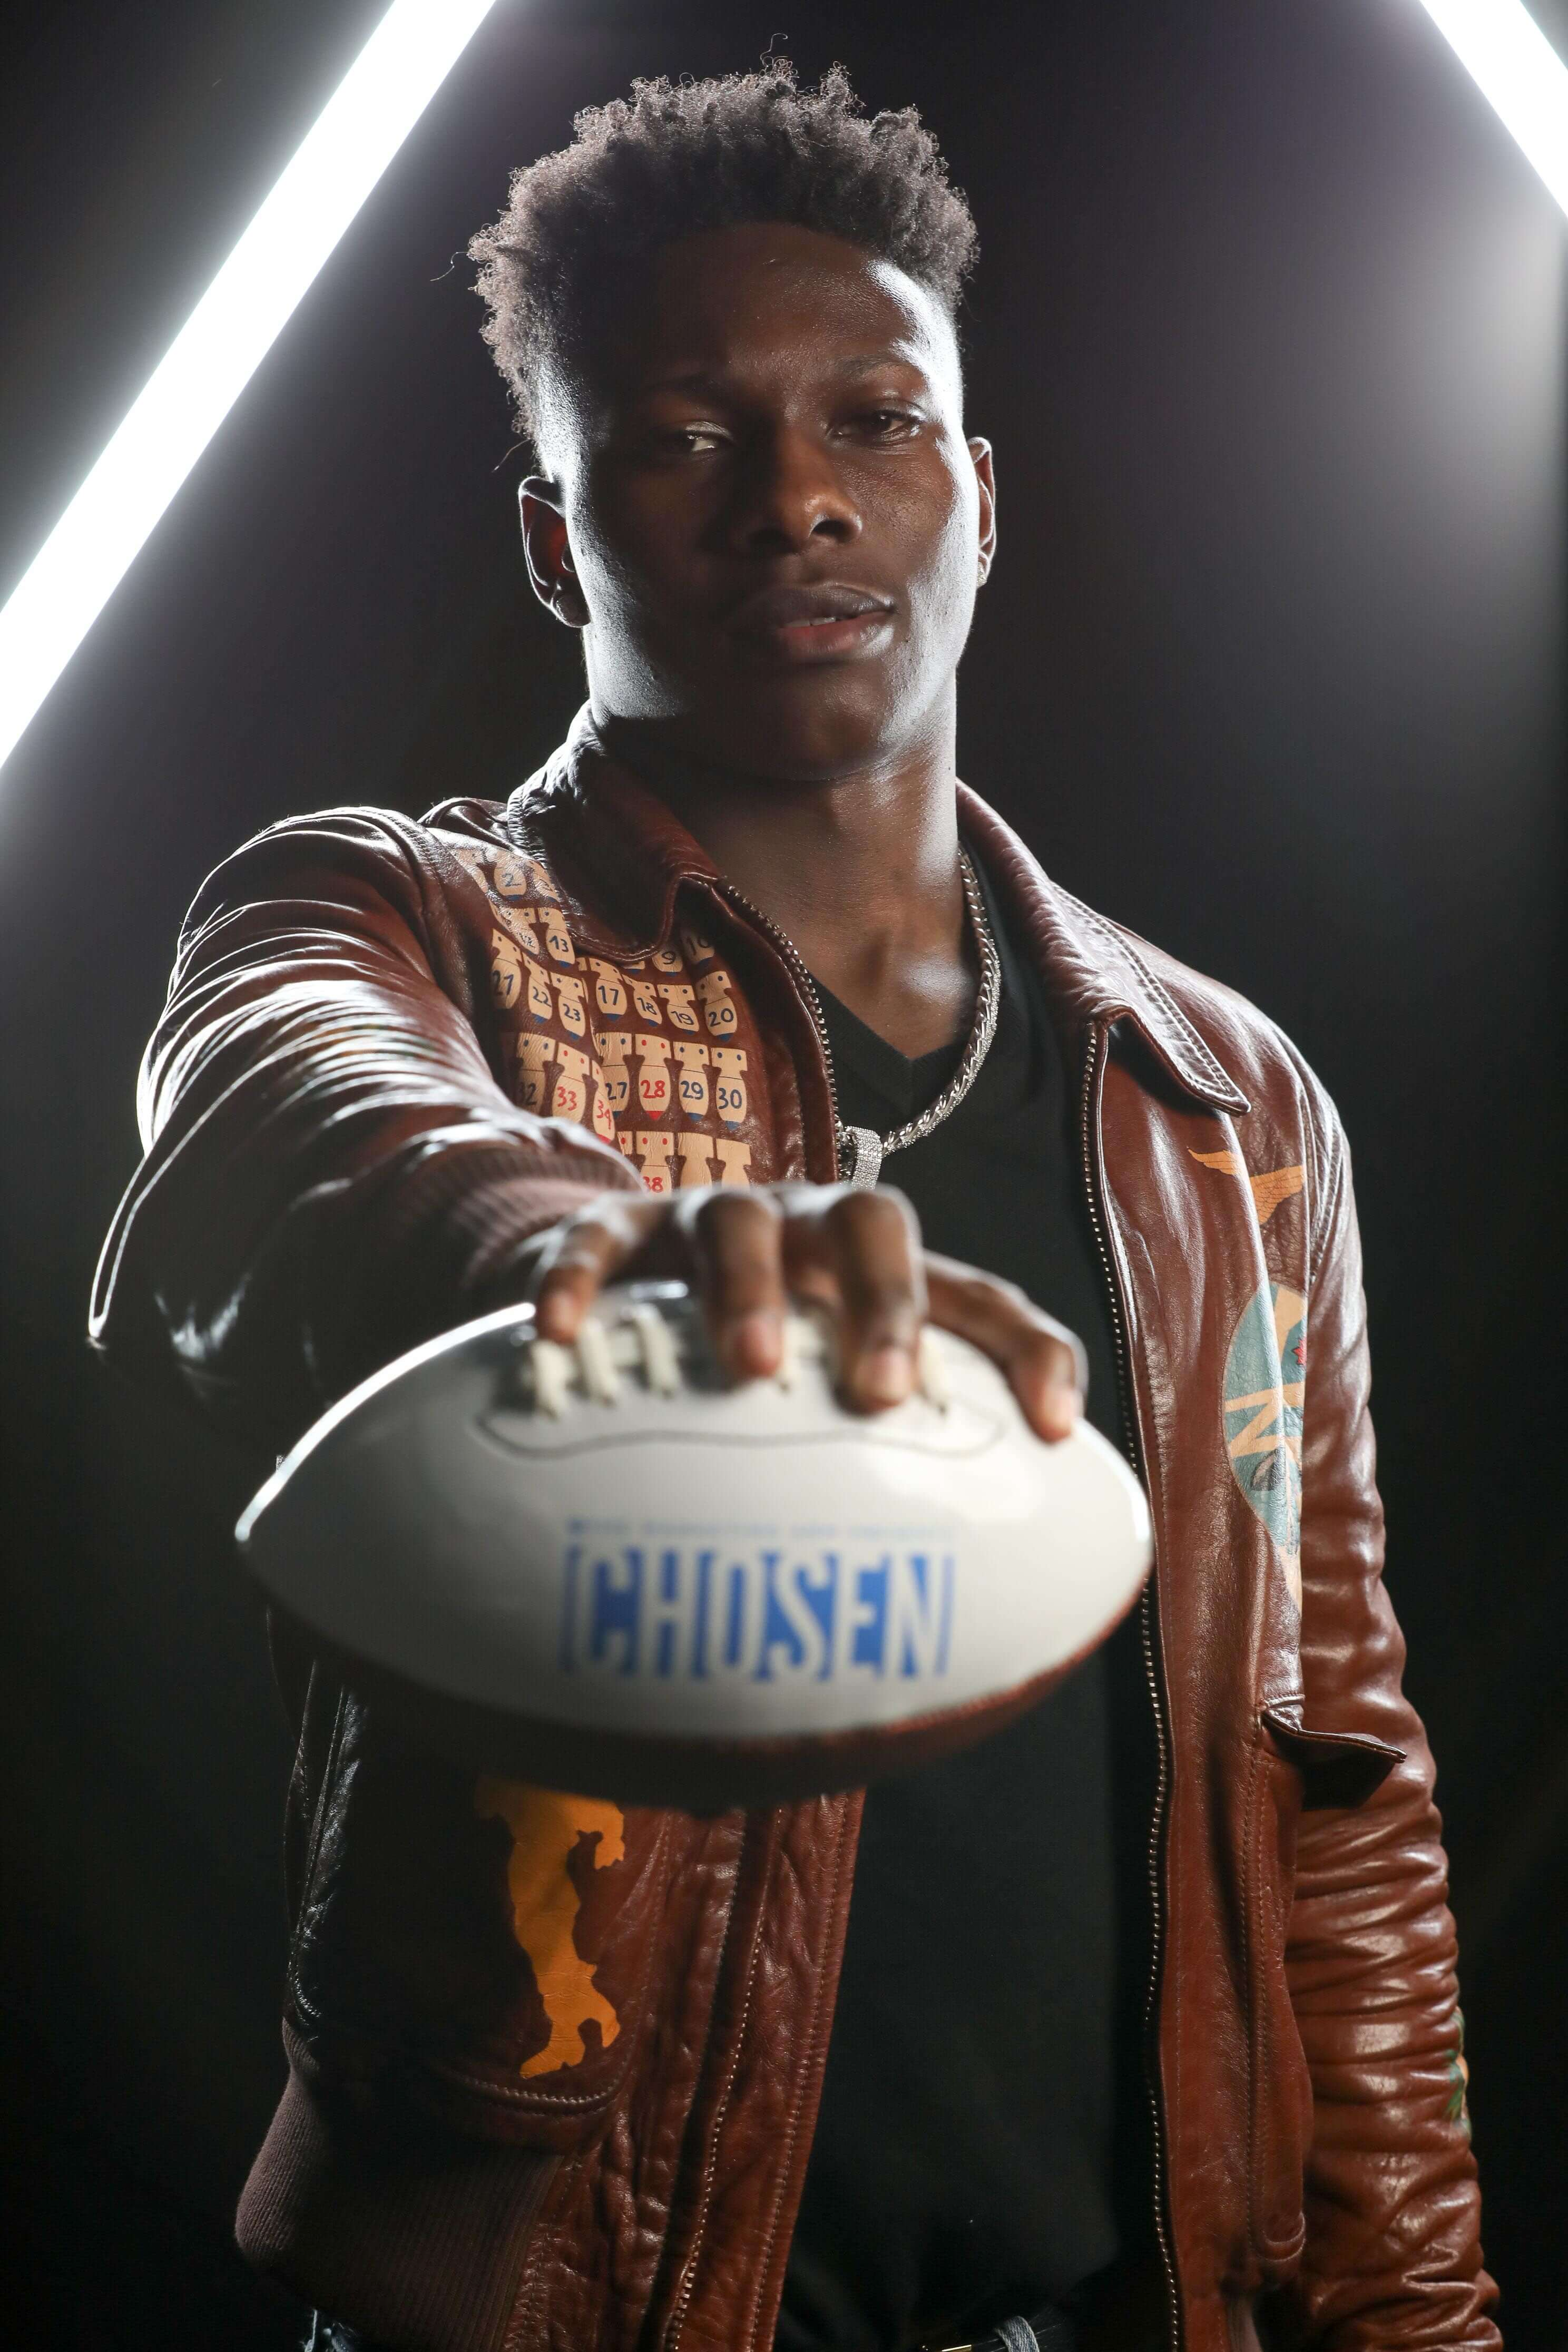 The night before the NFL Draft, The Marketing Arm flexed its muscles as a sports marketing and entertainment agency by hosting 25 of the most marketable draft prospects to interact with 15 top consumer brands at an exclusive event called CHOSEN.